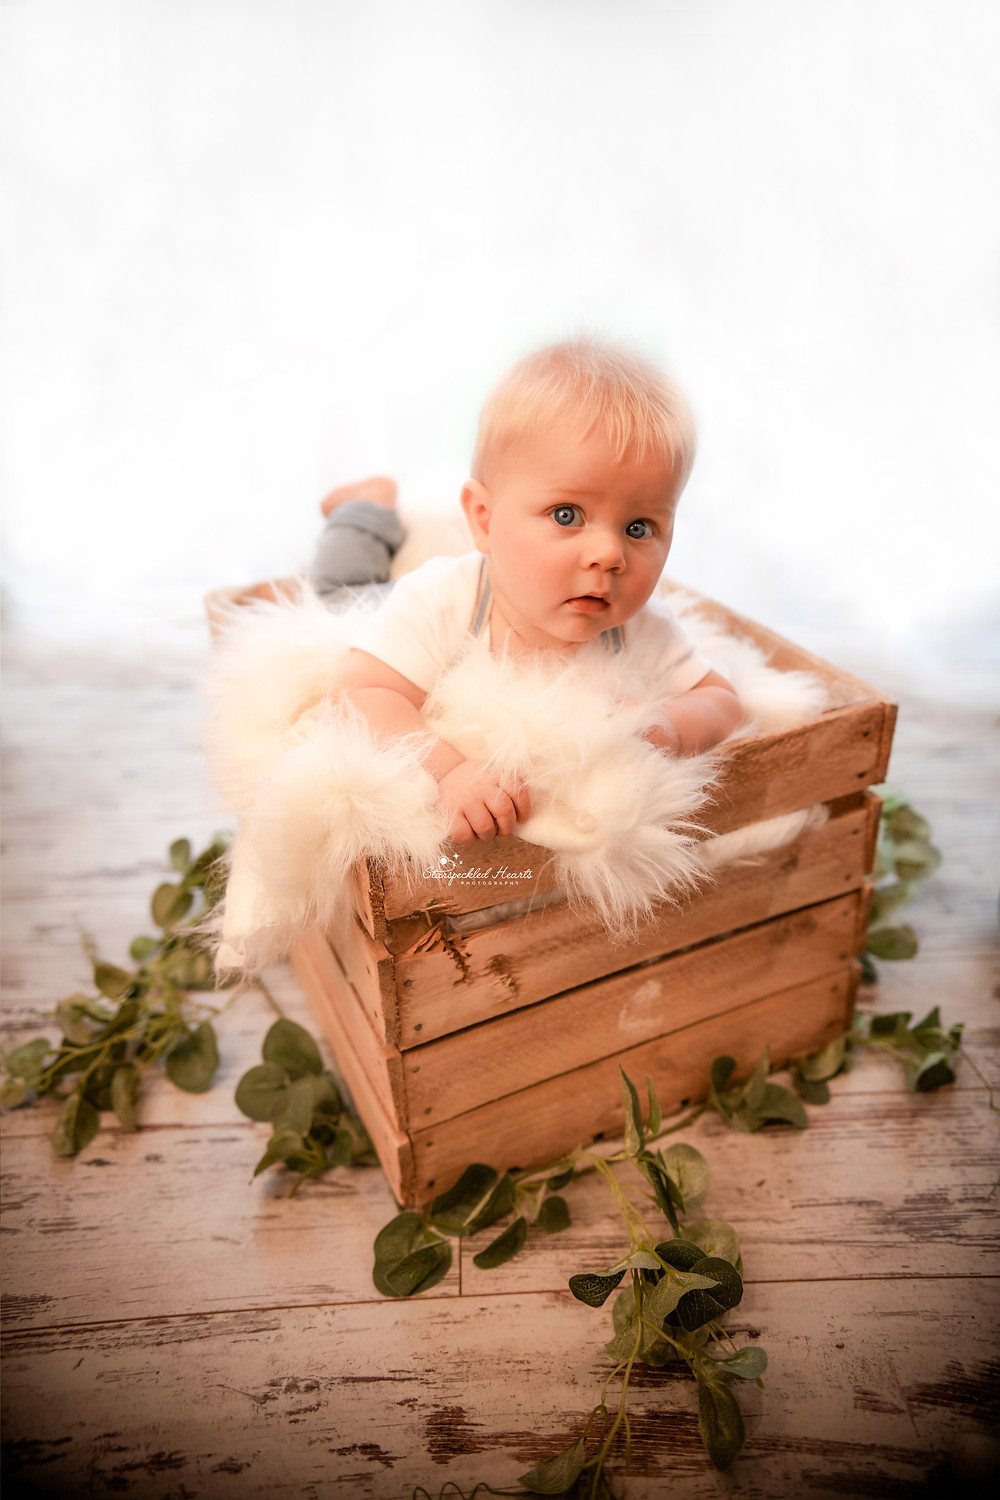 adorable baby boy lying in a crate surrounded by leaves